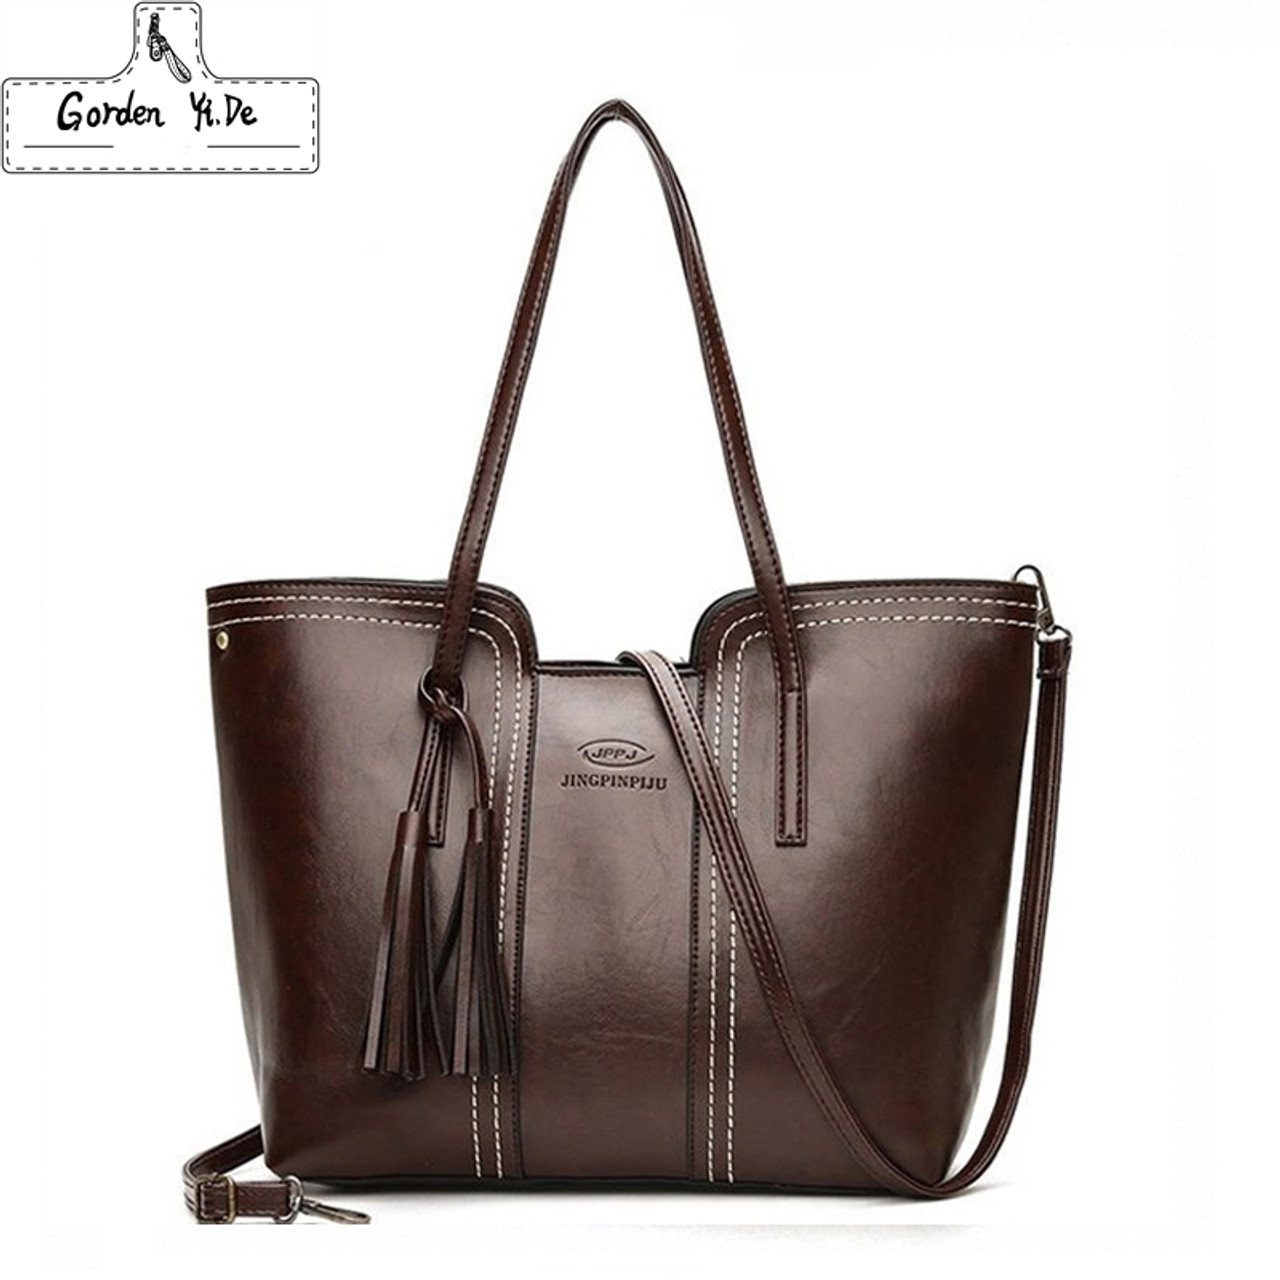 Women's Bags Top-handle Bags Capable Messenger Bags Large Capacity Women Shoulder Bags Female Trunk Tote Bolsos Famous Designers Leather Handbags